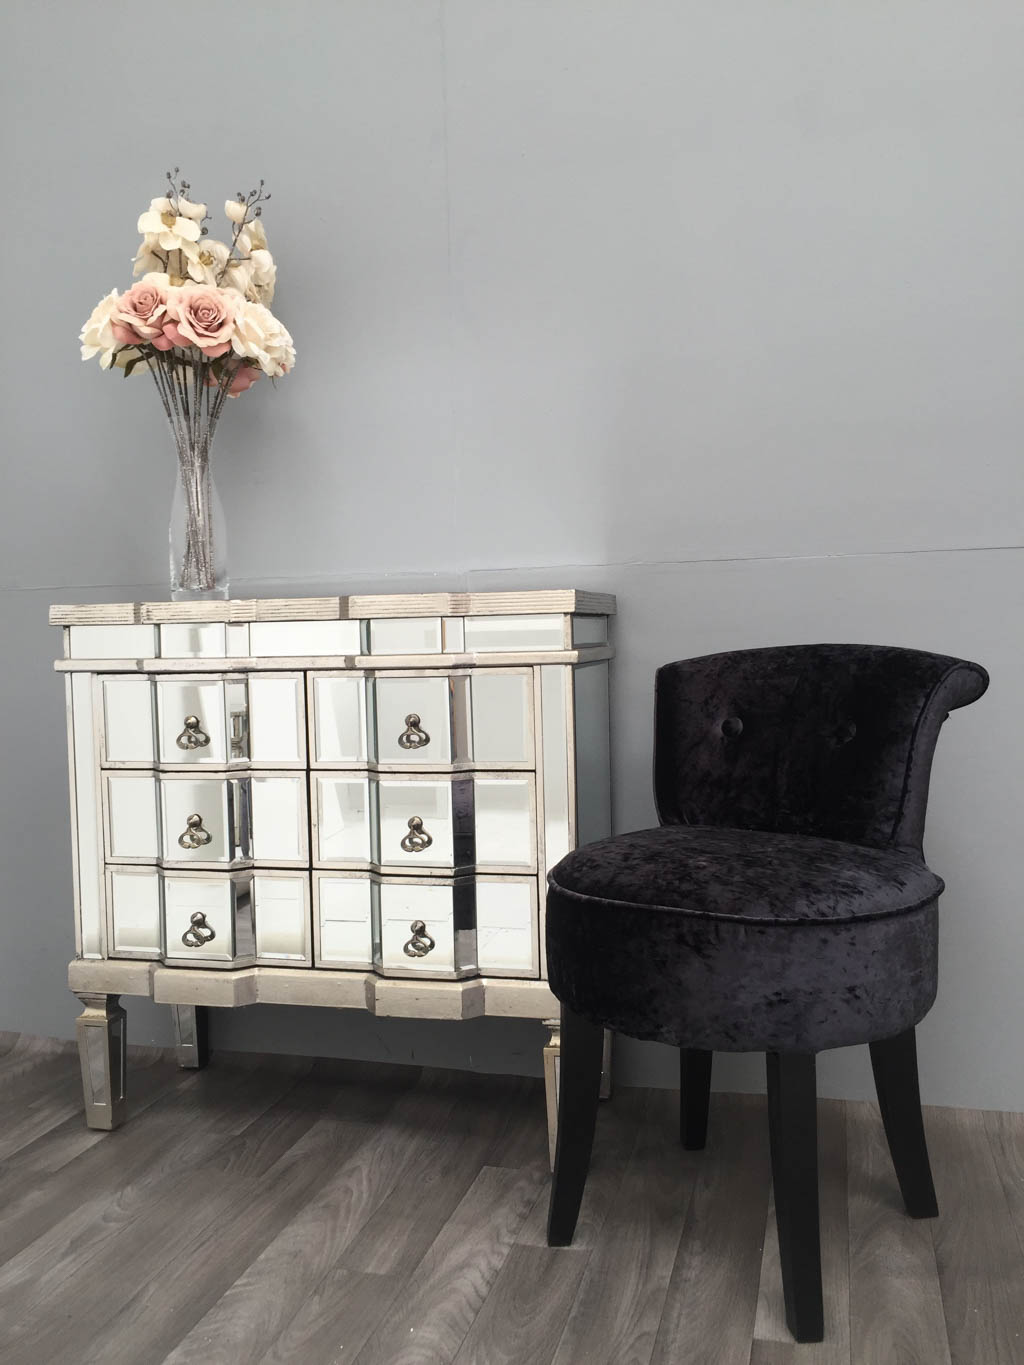 Charleston 6 Drawer Mirrored Chest arranged next to a black chair on the right